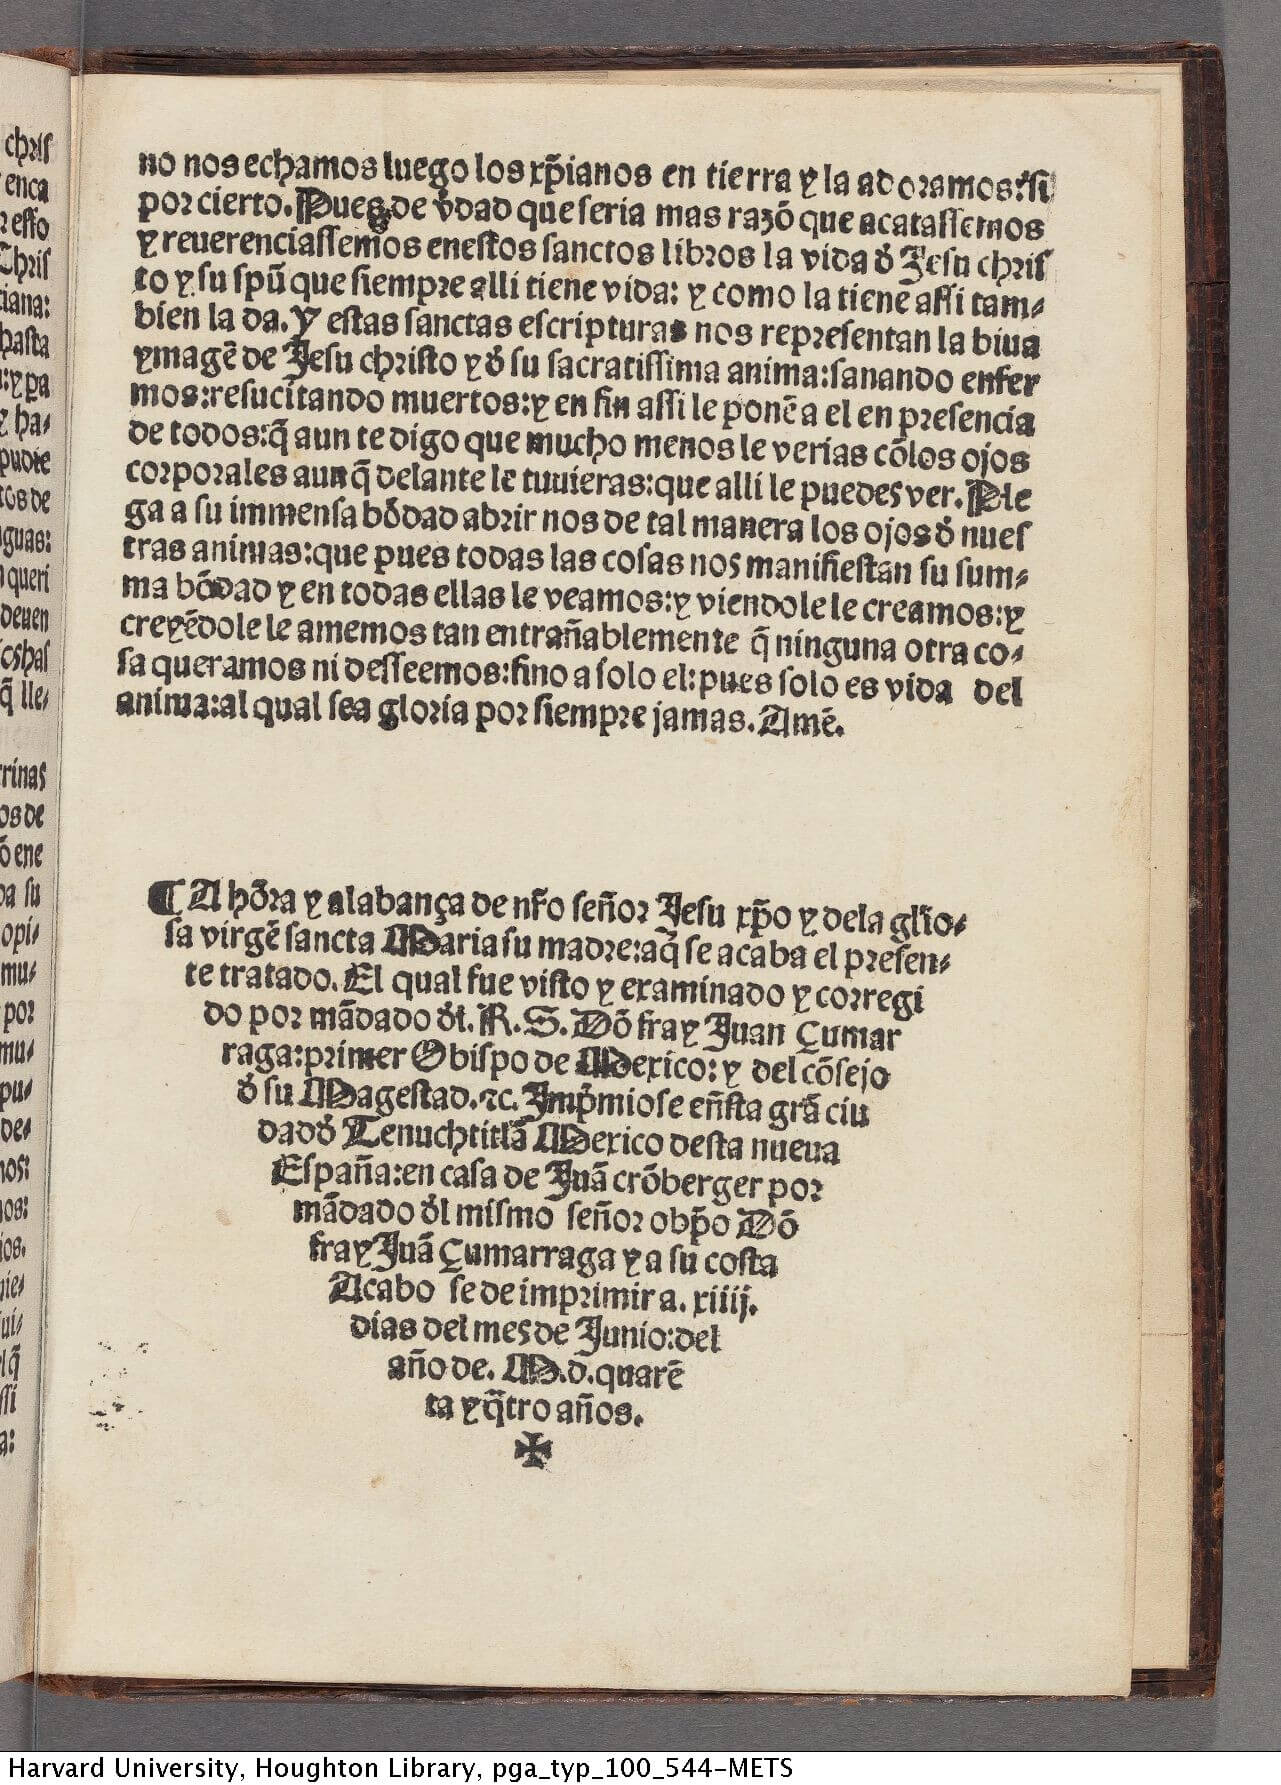 The colophon is printed as a descending triangle as a way of decoratively ending the text, a shape also seen in tailpieces.